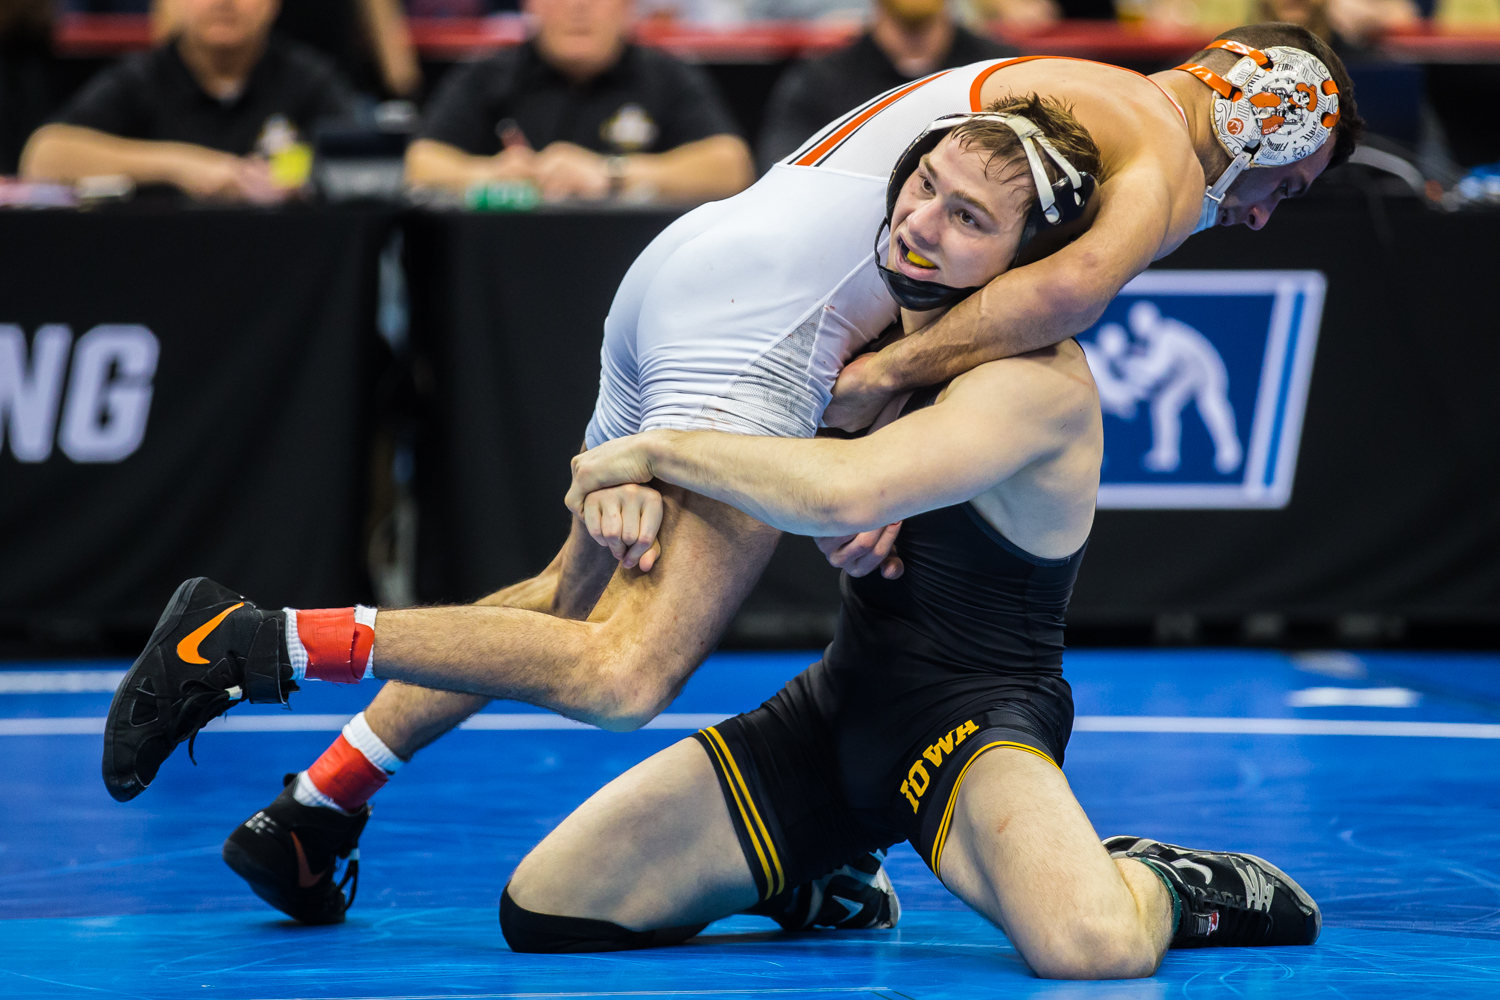 Iowa's 125-pound Spencer Lee wrestles Oklahoma State's Nicholas Piccininni during the fourth session of the 2019 NCAA D1 Wrestling Championships at PPG Paints Arena in Pittsburgh, PA on Friday, March 22, 2019. Lee won by decision, 11-4.